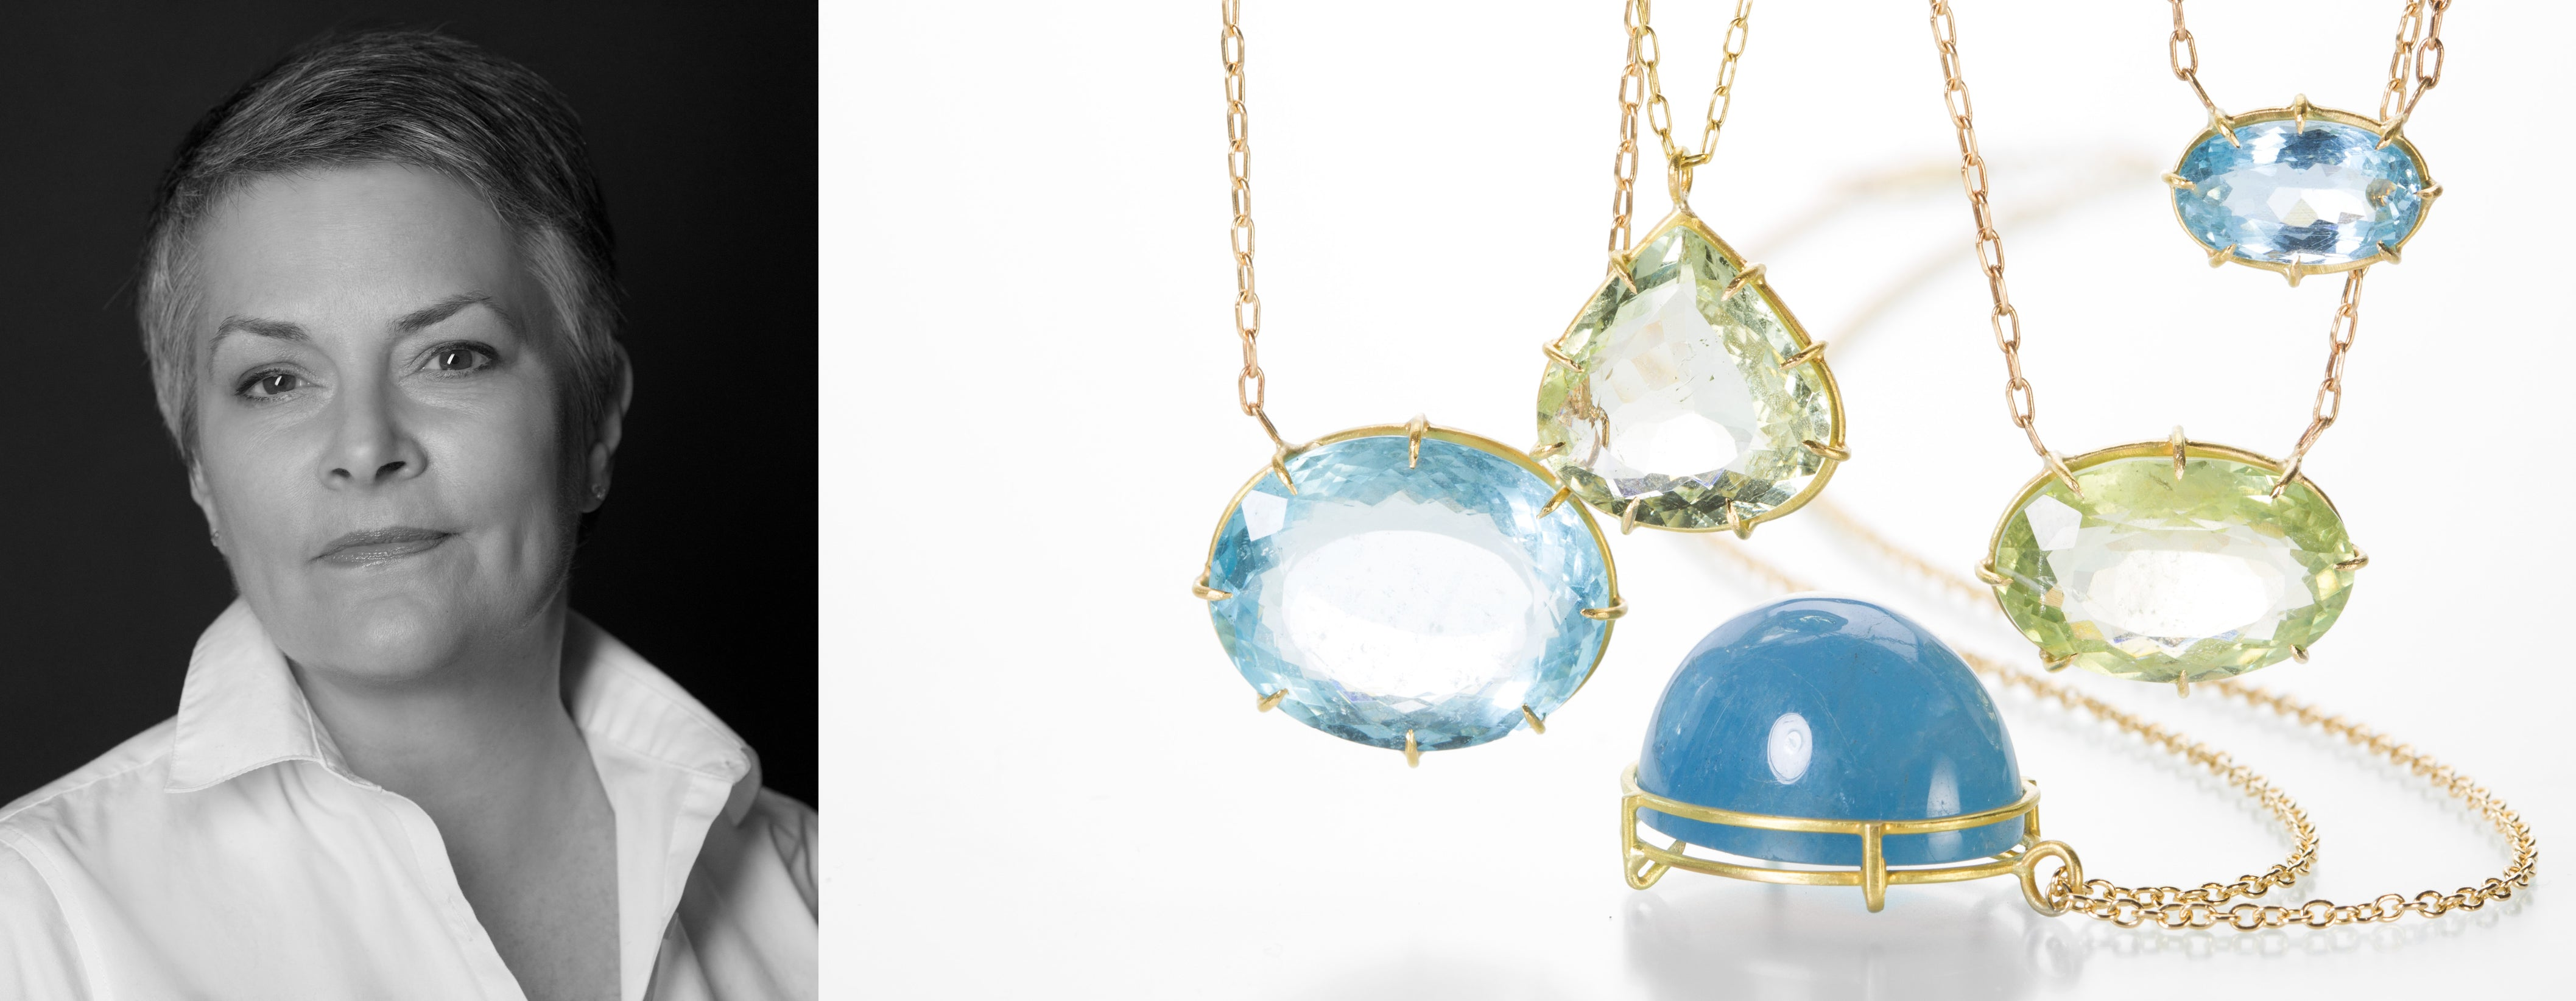 Jewelry designer and artist Rosanne Pugliese pictured alongside her fine jewelry collection featuring handmade, 18k yellow gold aquamarine necklaces and beryl pendants